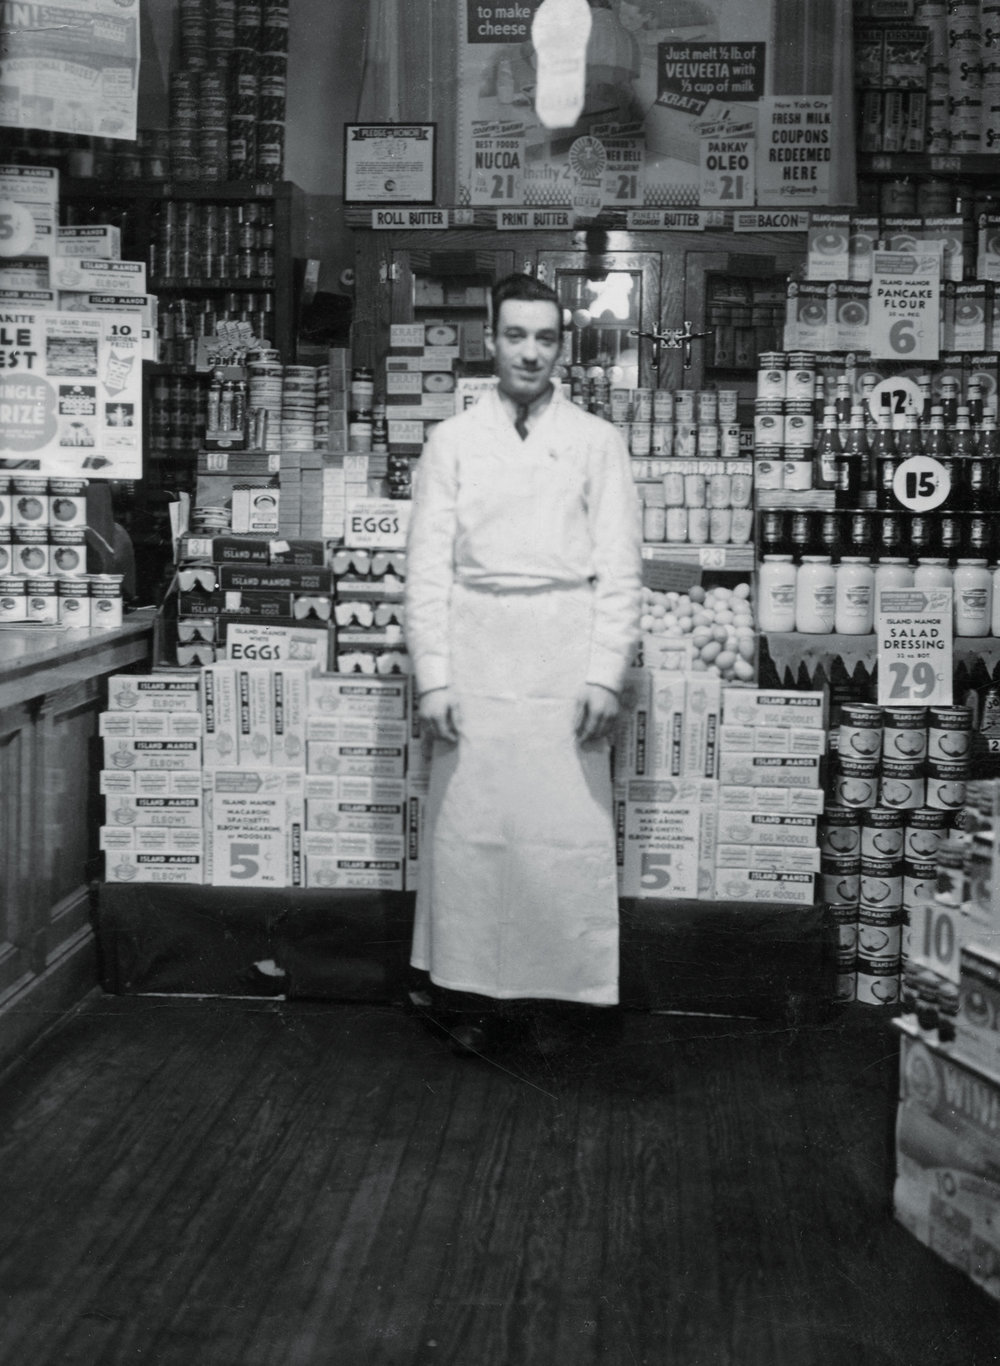 August Dalpiaz working in a Brooklyn, New York grocery store during the Depression. Note the prices.